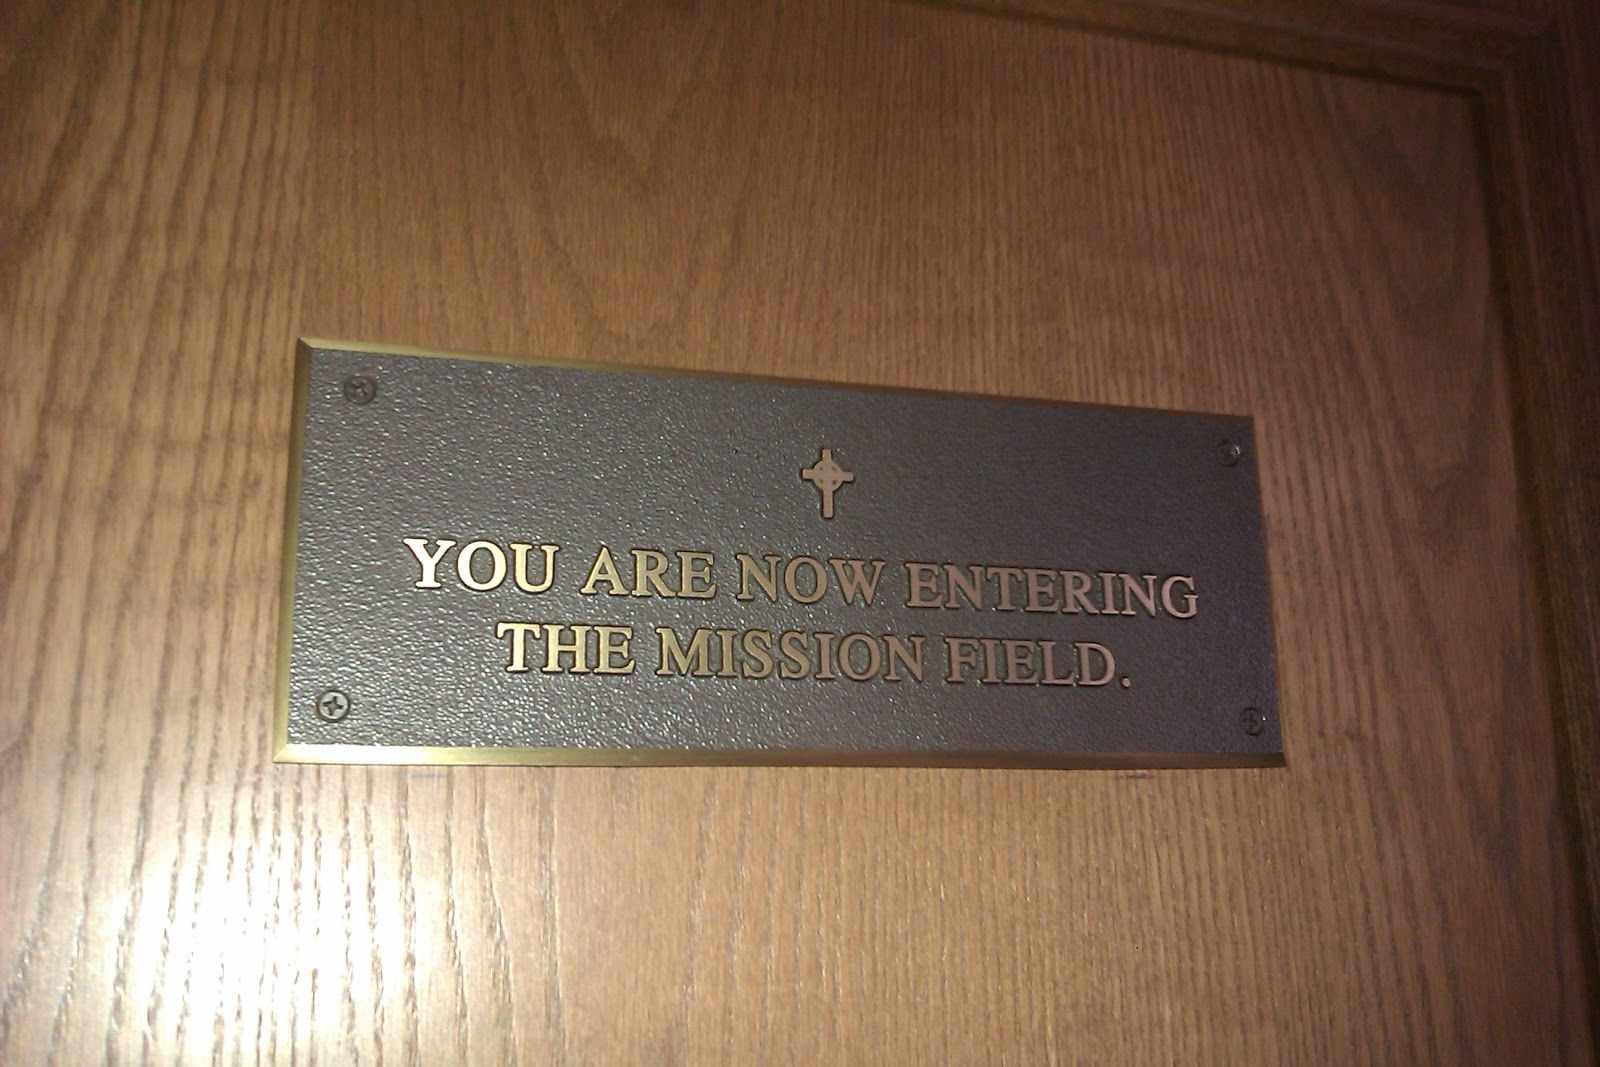 You are now entering the Mission Field. I want this sign